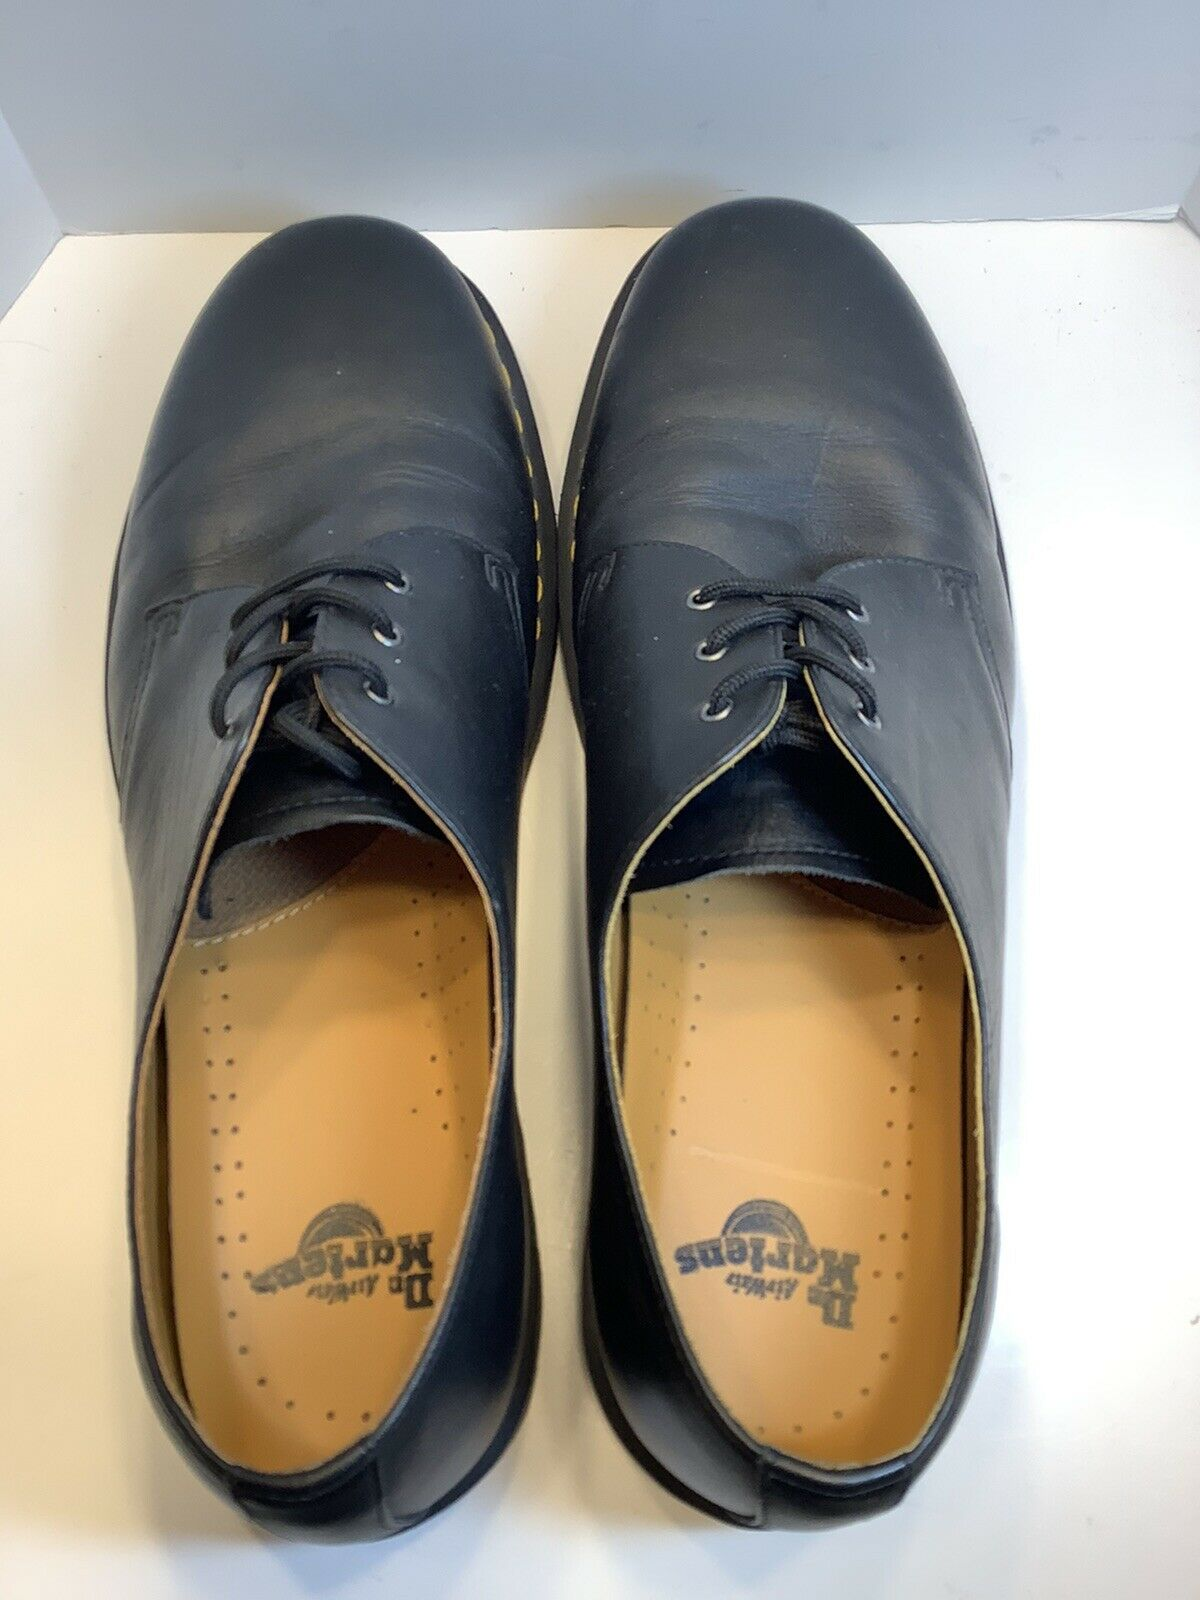 Dr. DOC Martens Boston AW004 Black Leather Oxford Work Shoes Mens US 15 M, New